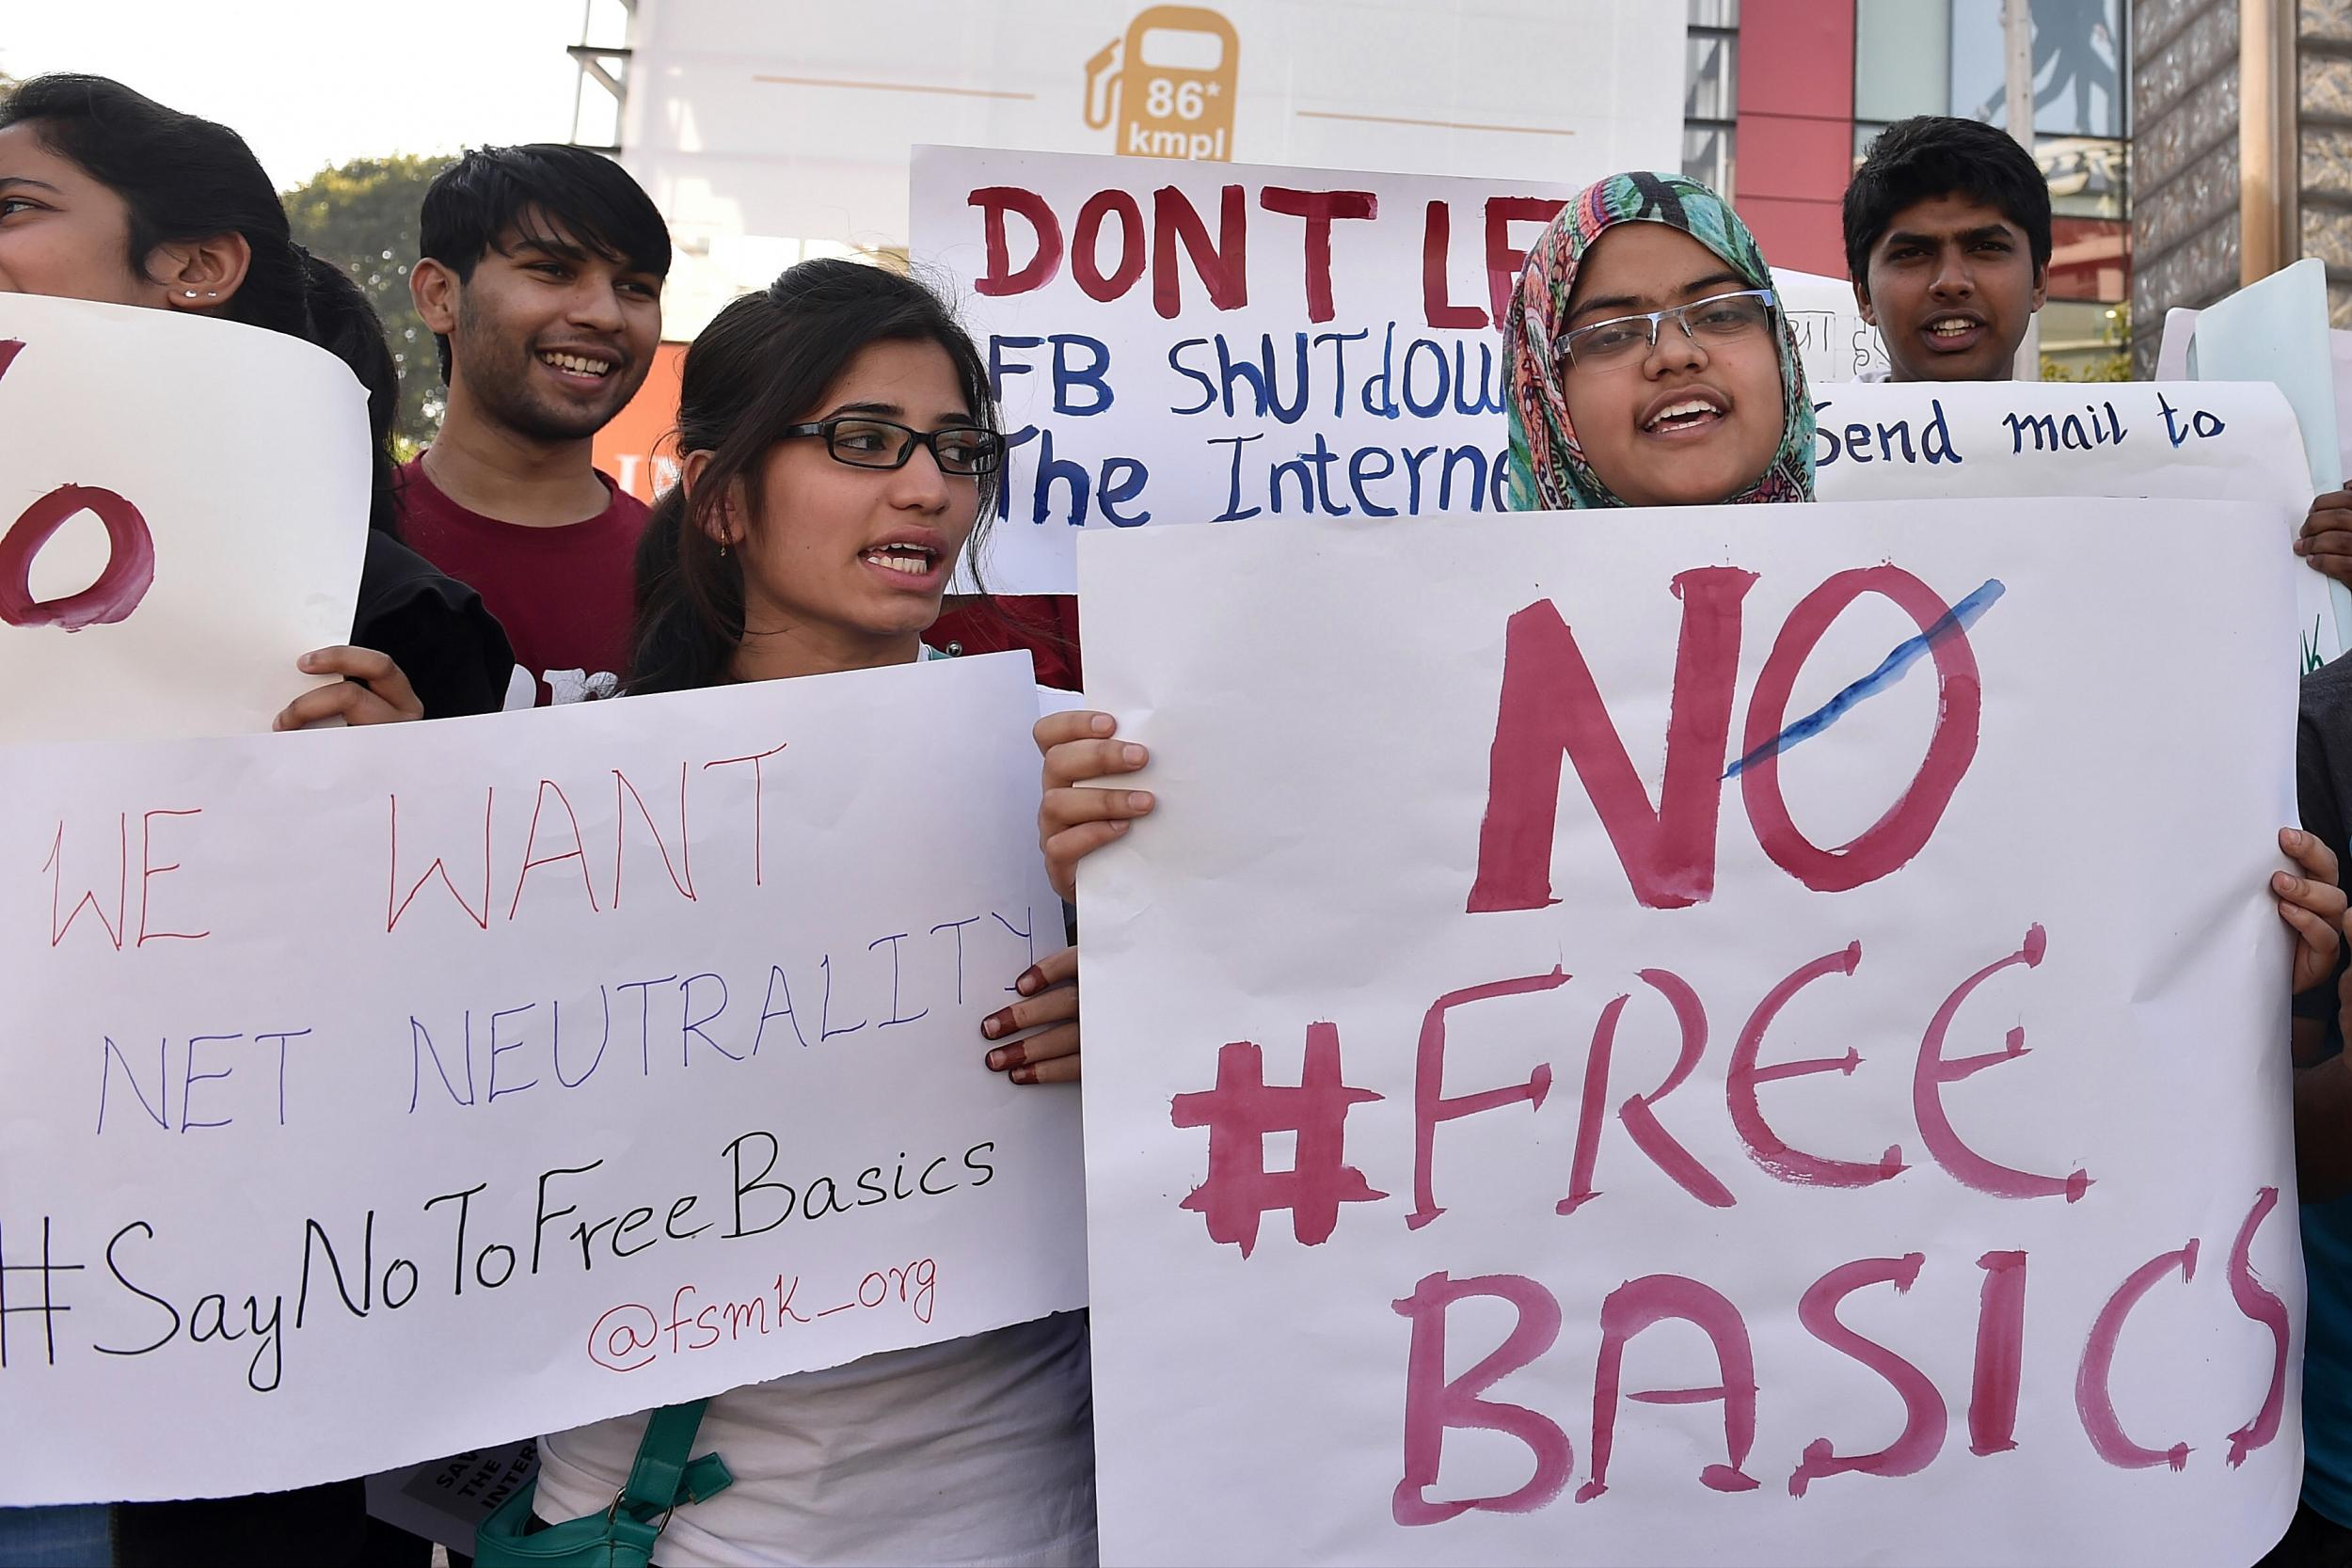 Facebook's controversial Free Basics service shut down in